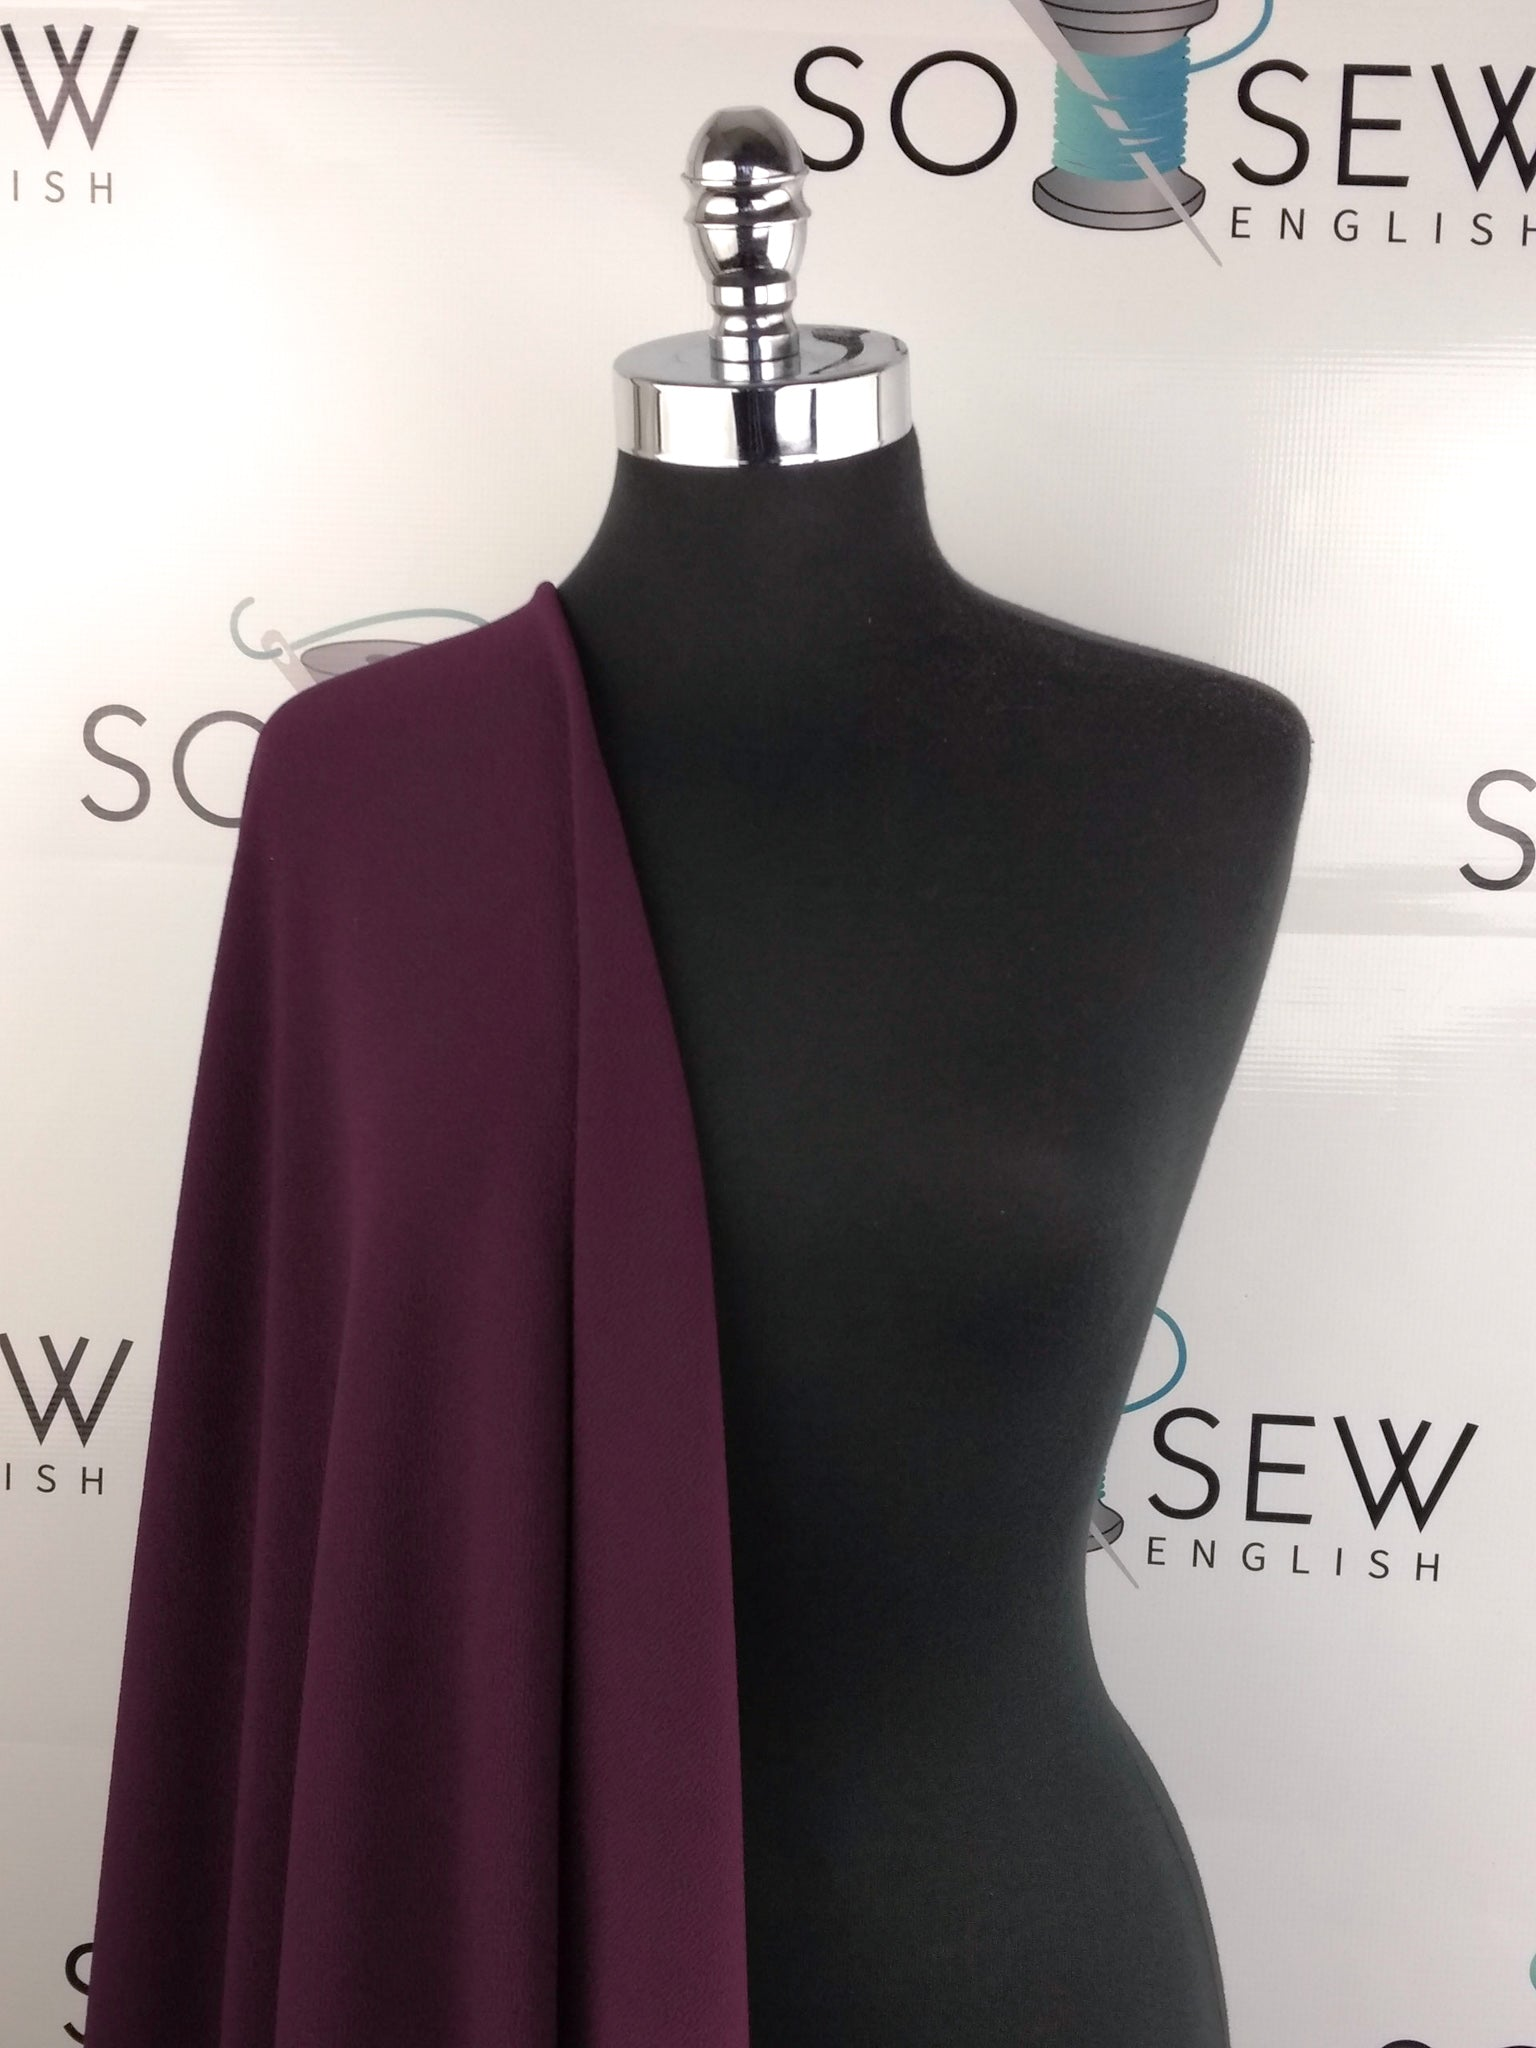 Solid Burgundy - Crepe Scuba Knit -By The Yard